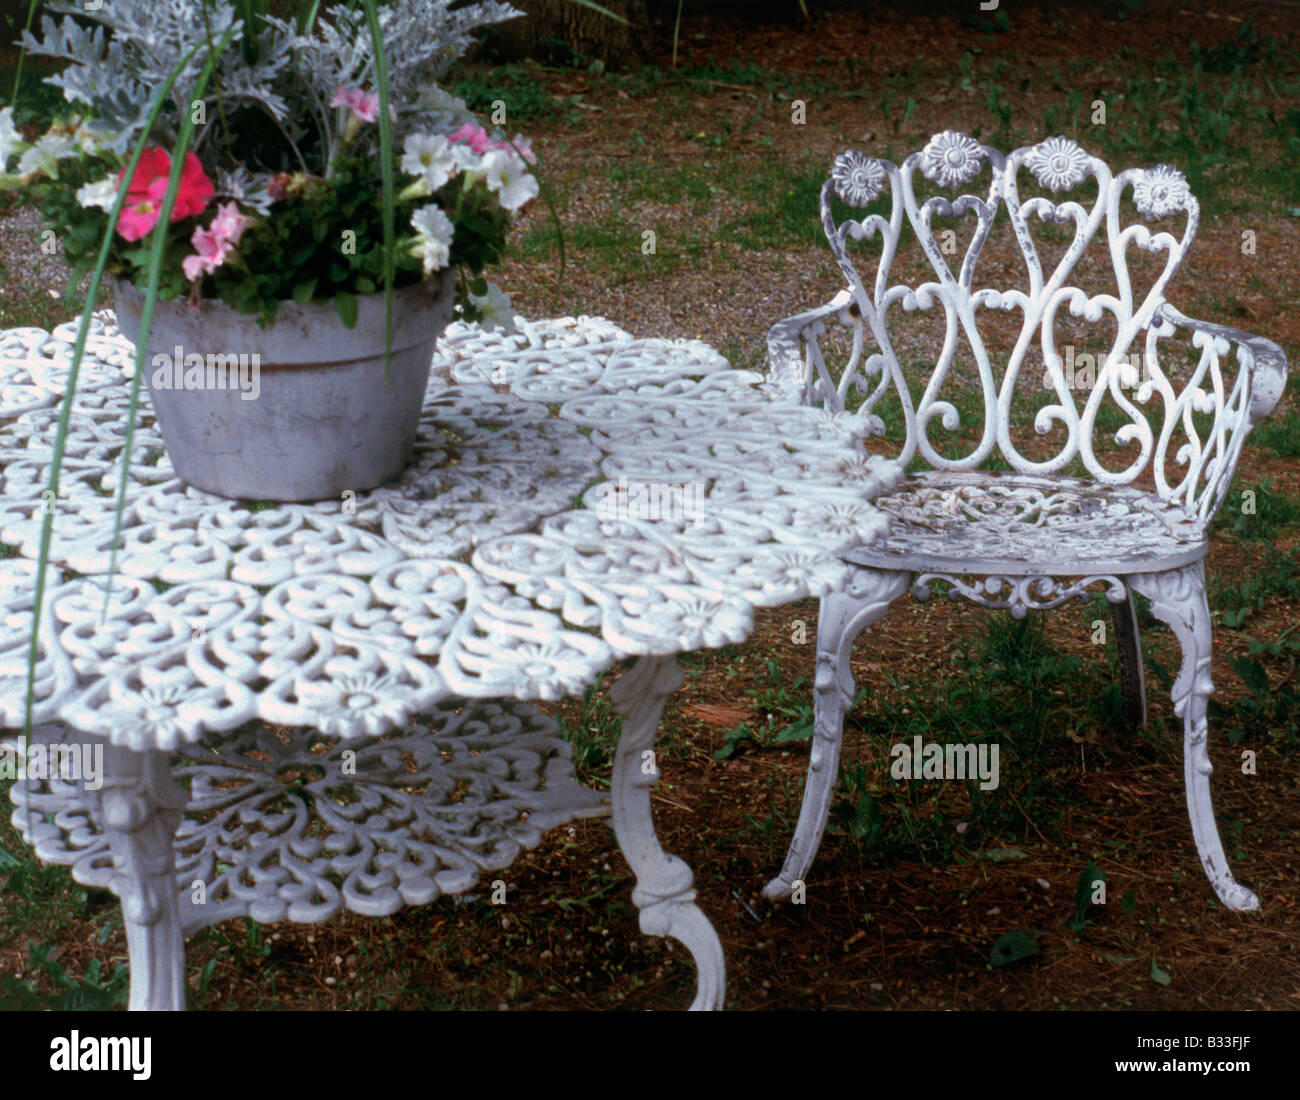 Ornate white Victorian iron garden furniture and a pot of plants